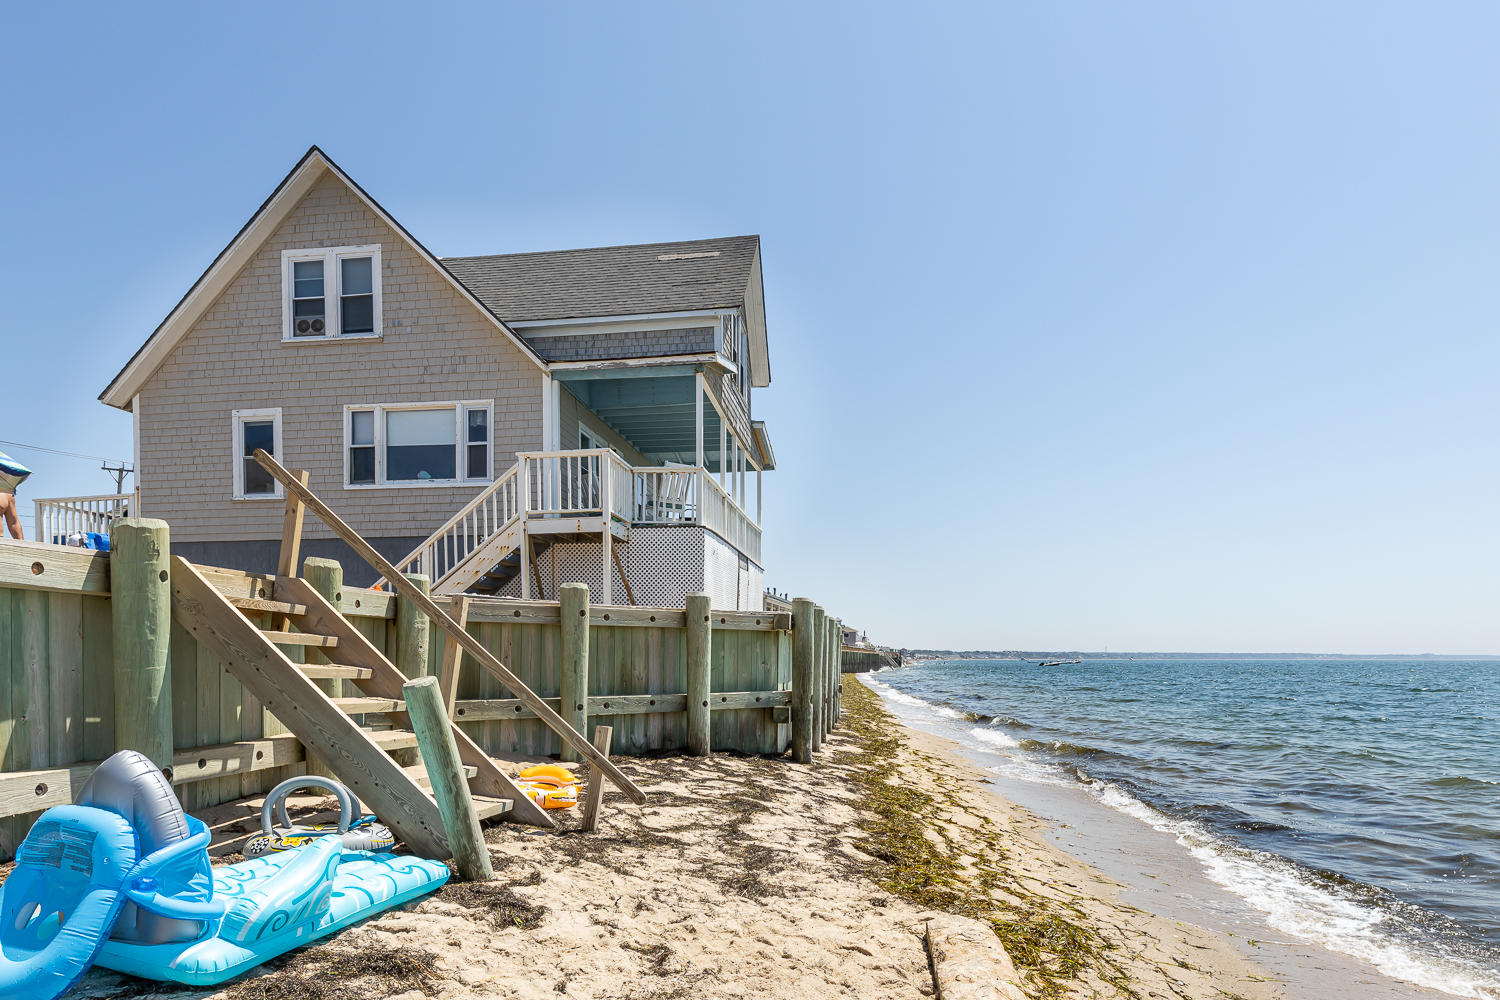 522 Shore Road, North Truro MA, 02652 details